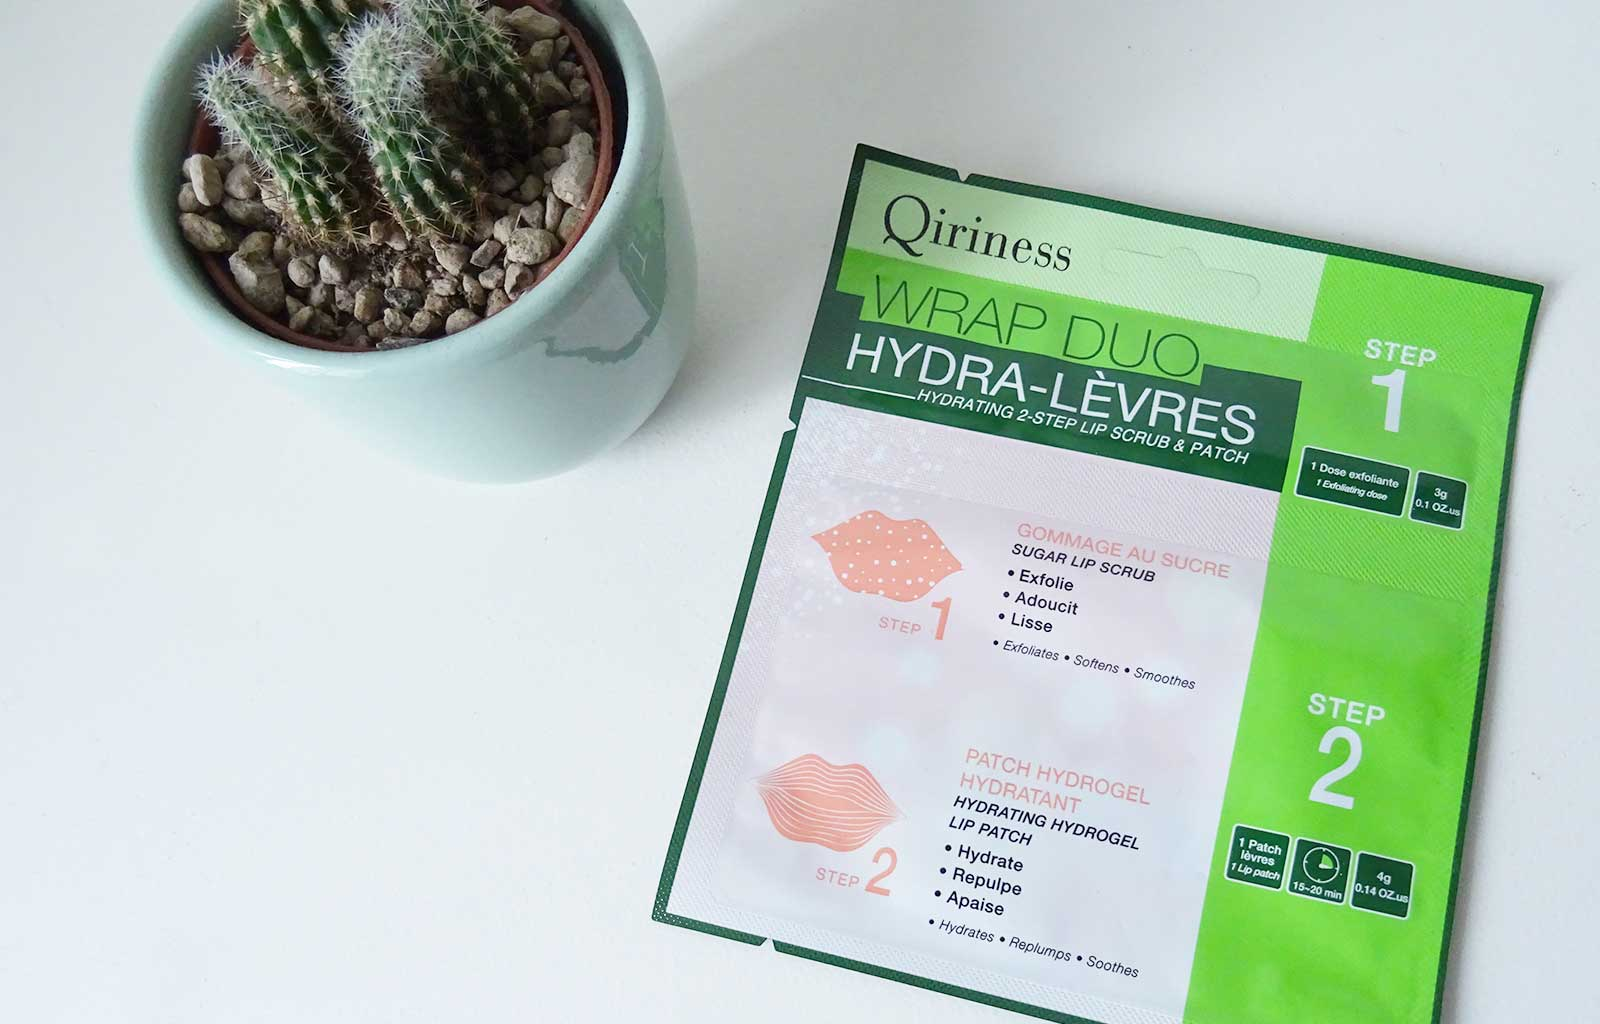 Wrap duo hydra-lèvres Qiriness